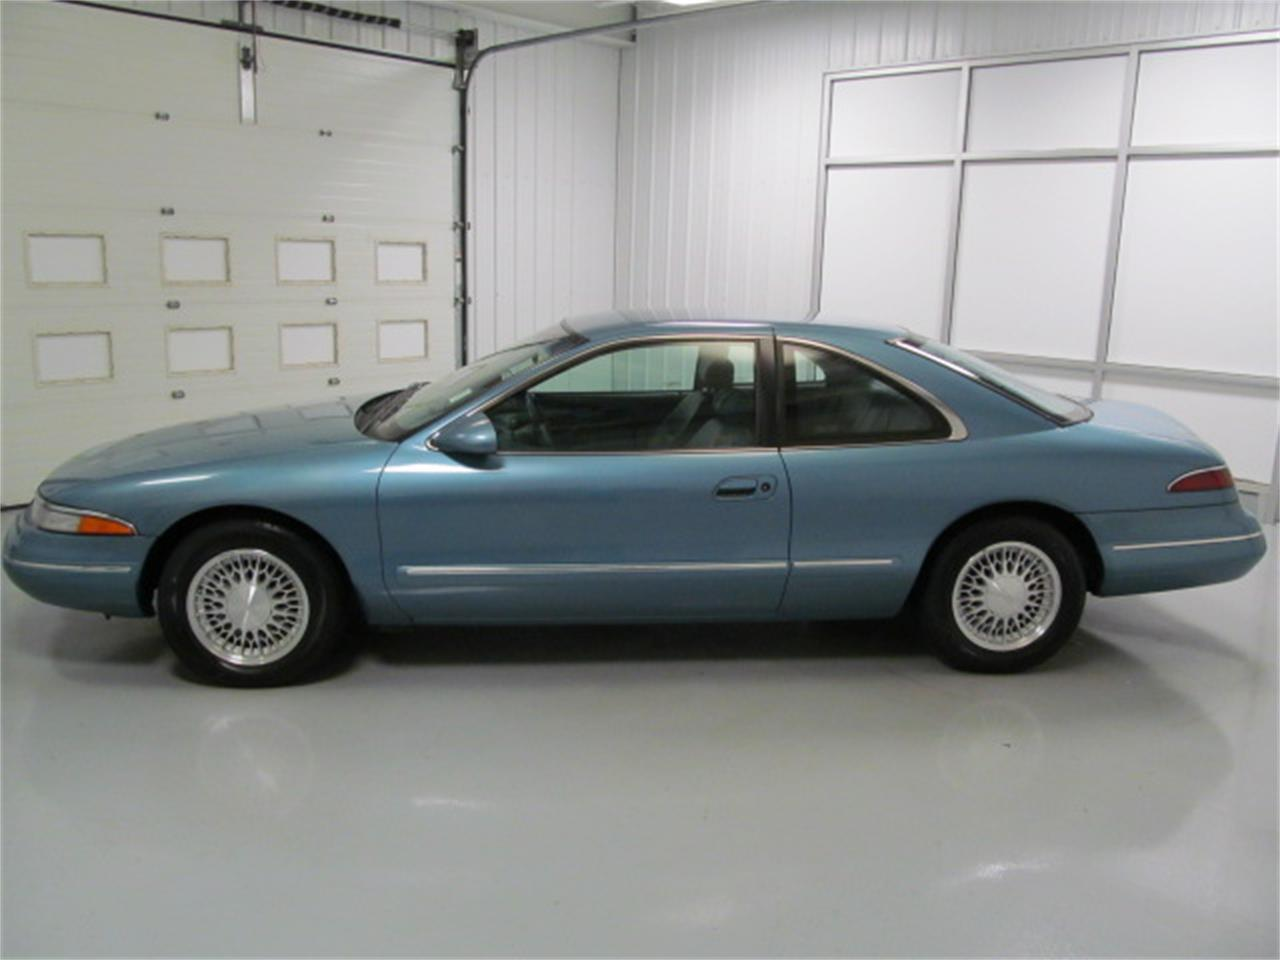 Large Picture of '93 Mark VIII located in Christiansburg Virginia - $9,900.00 Offered by Duncan Imports & Classic Cars - JL9Z